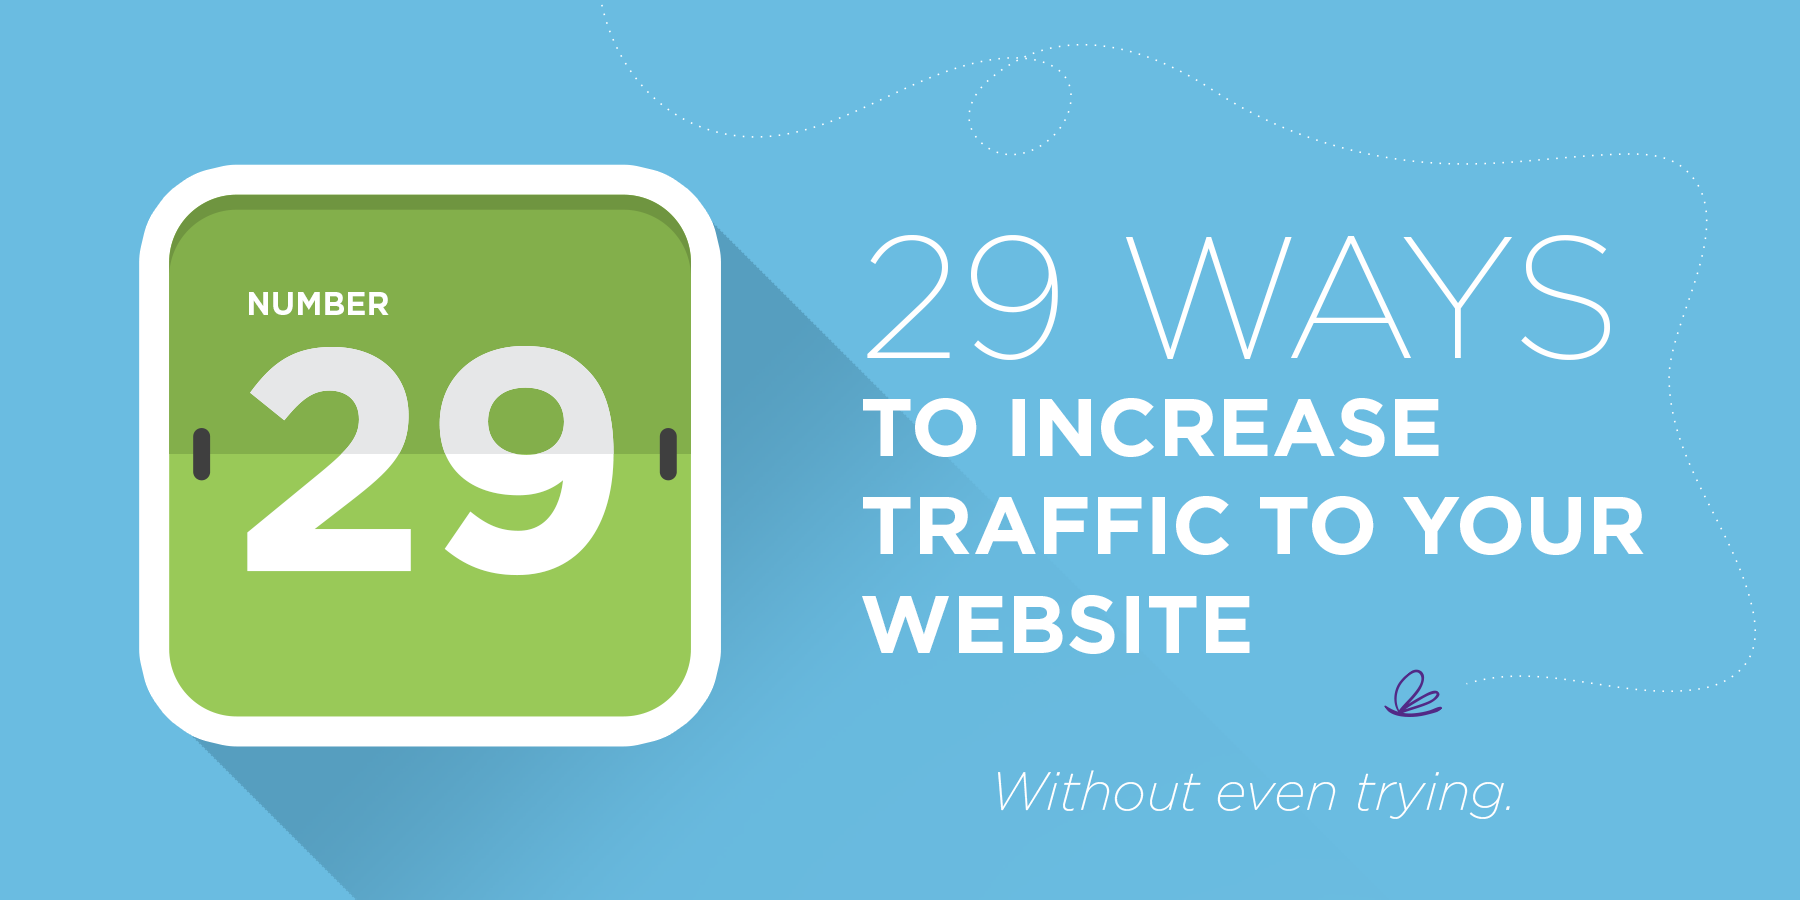 Digital Media Marketing Agency AcuMedia provides 29 helpful and easy tips to increase website traffic